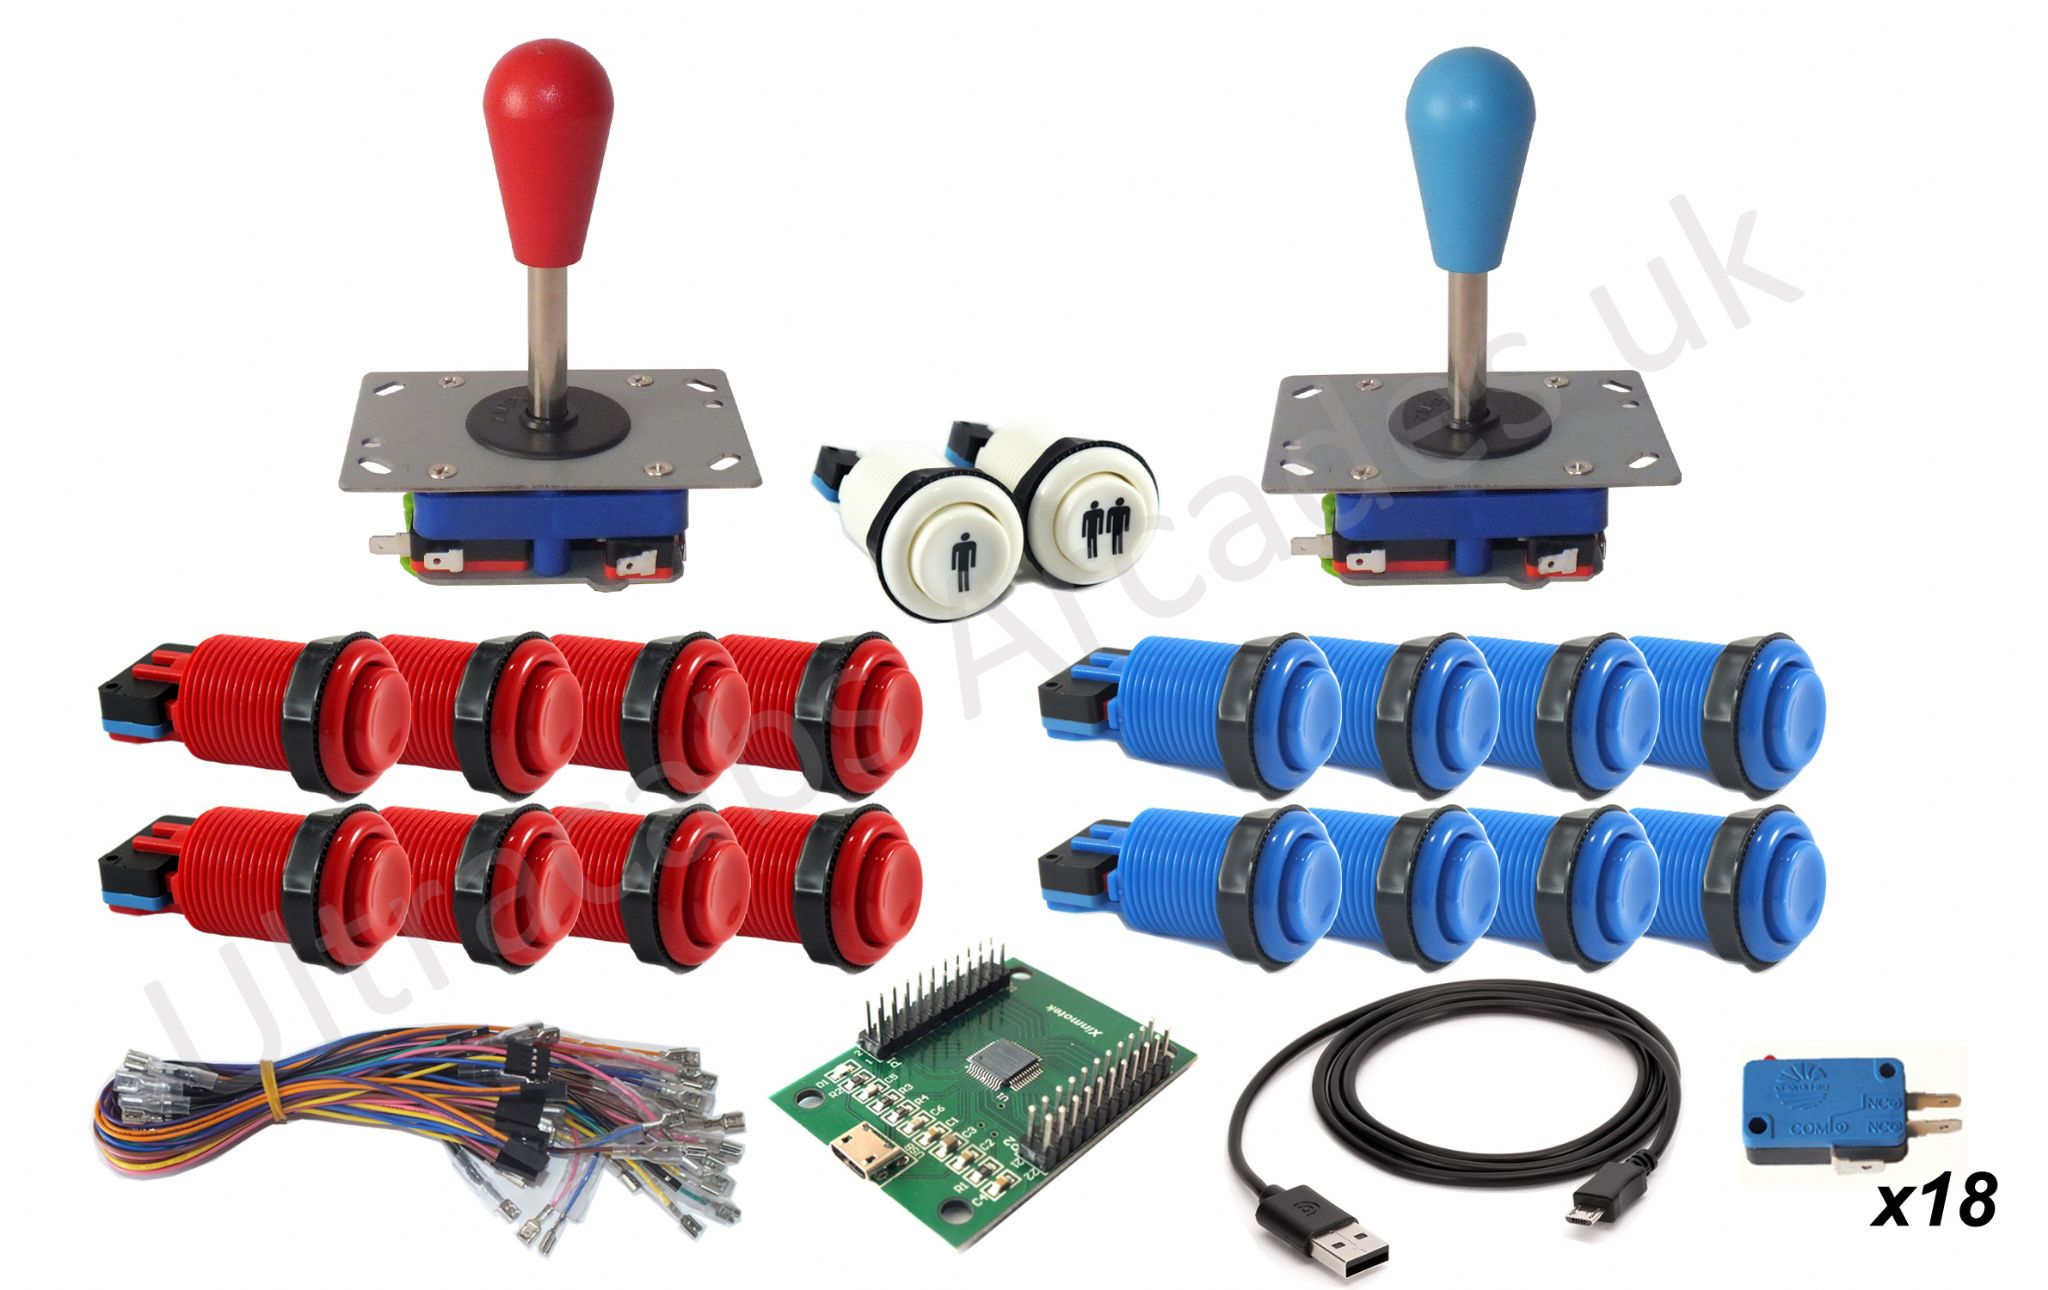 Arcade Joystick 2 Player Control Kit Set - 16 White Concave Buttons - Xin Mo Usb Wiring Diagram